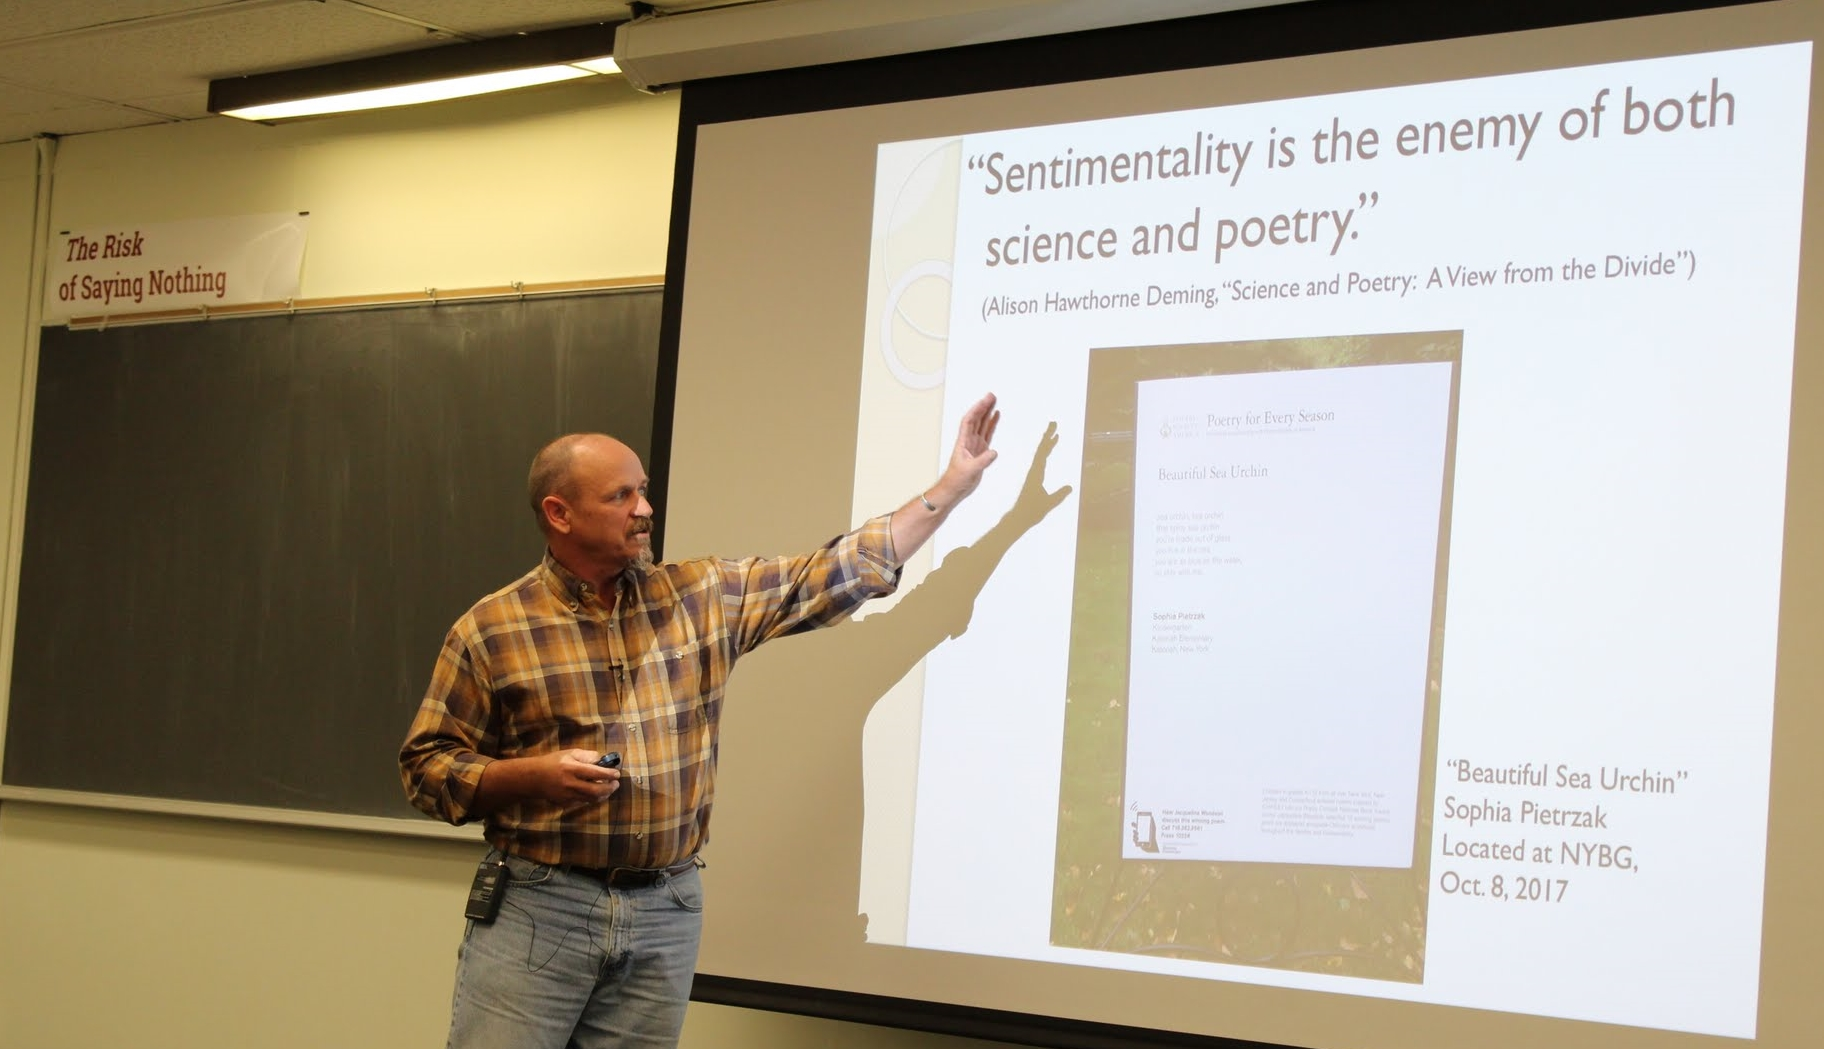 SoMAS Sustainability Studies Faculty David Taylor reminds the audience about how poetry has always played an important role in our scientific communication